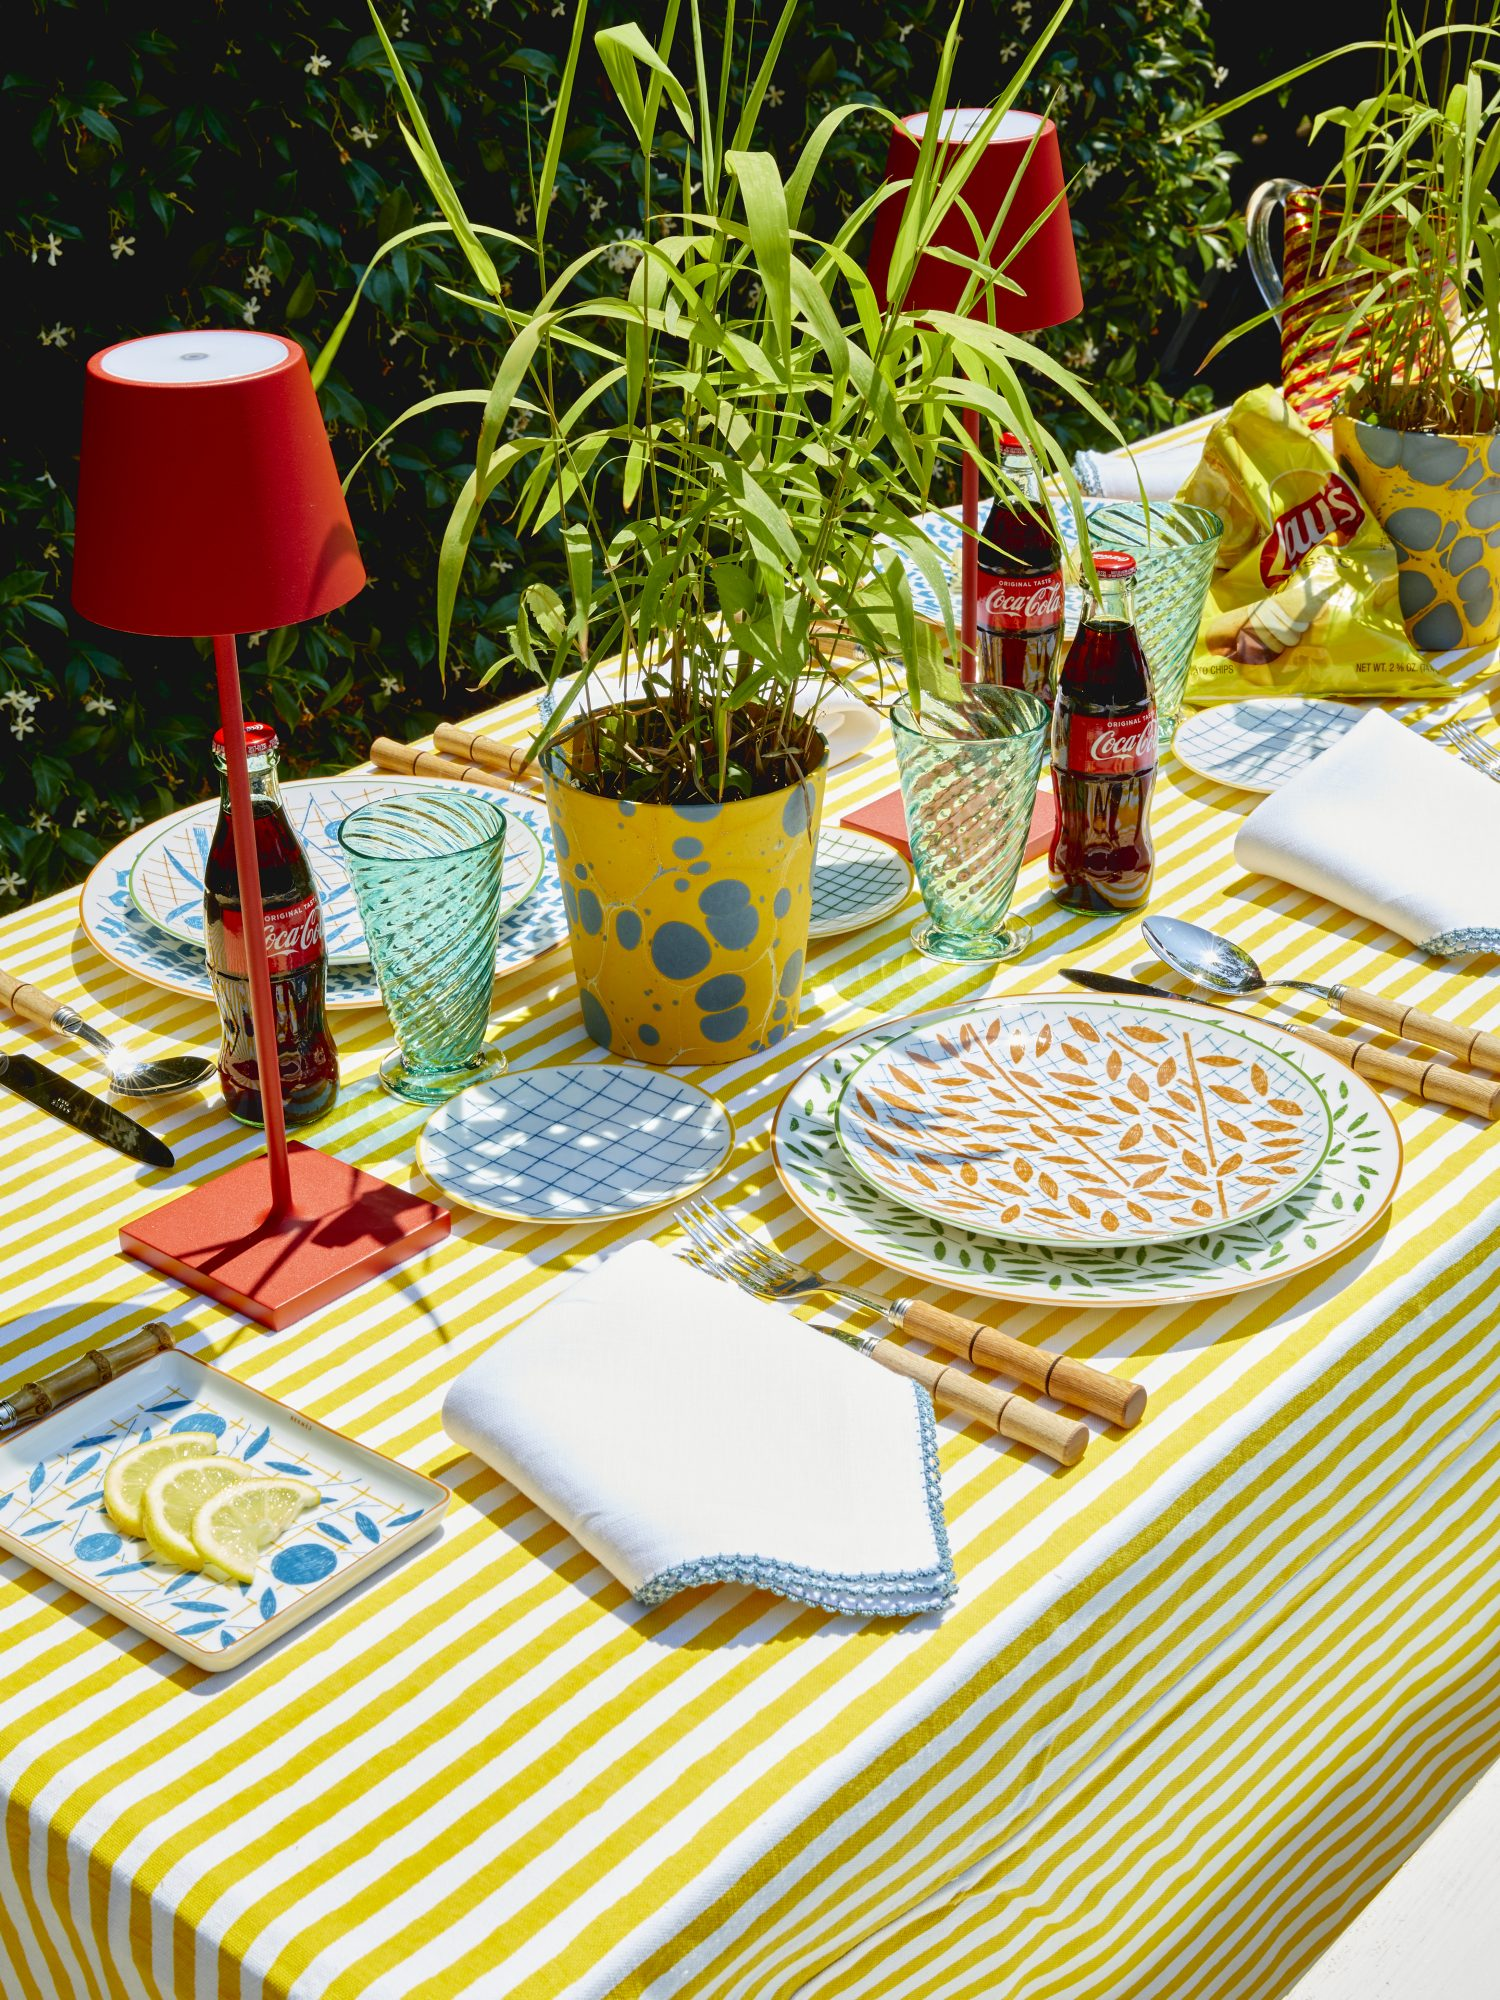 outdoor place setting with yellow tablecloth